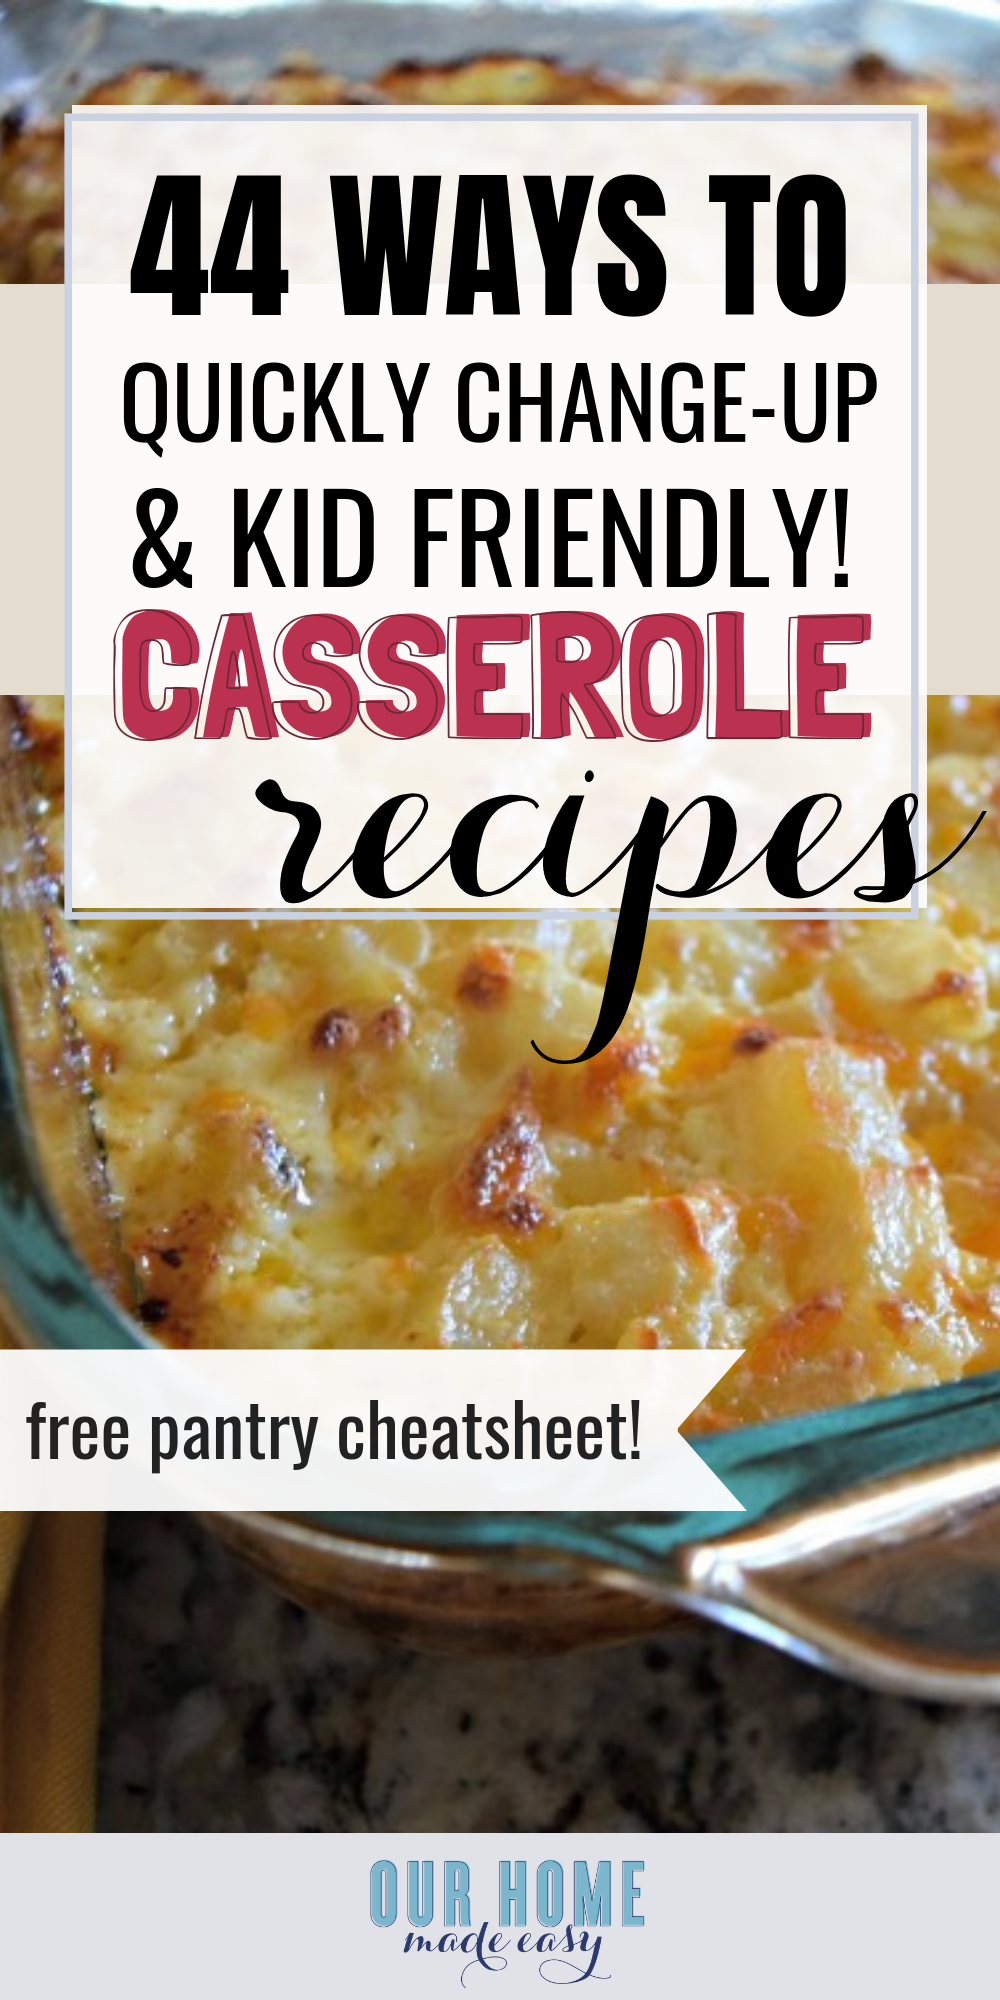 Easy ways to update your favorite casserole recipes with new flavors and ingredients